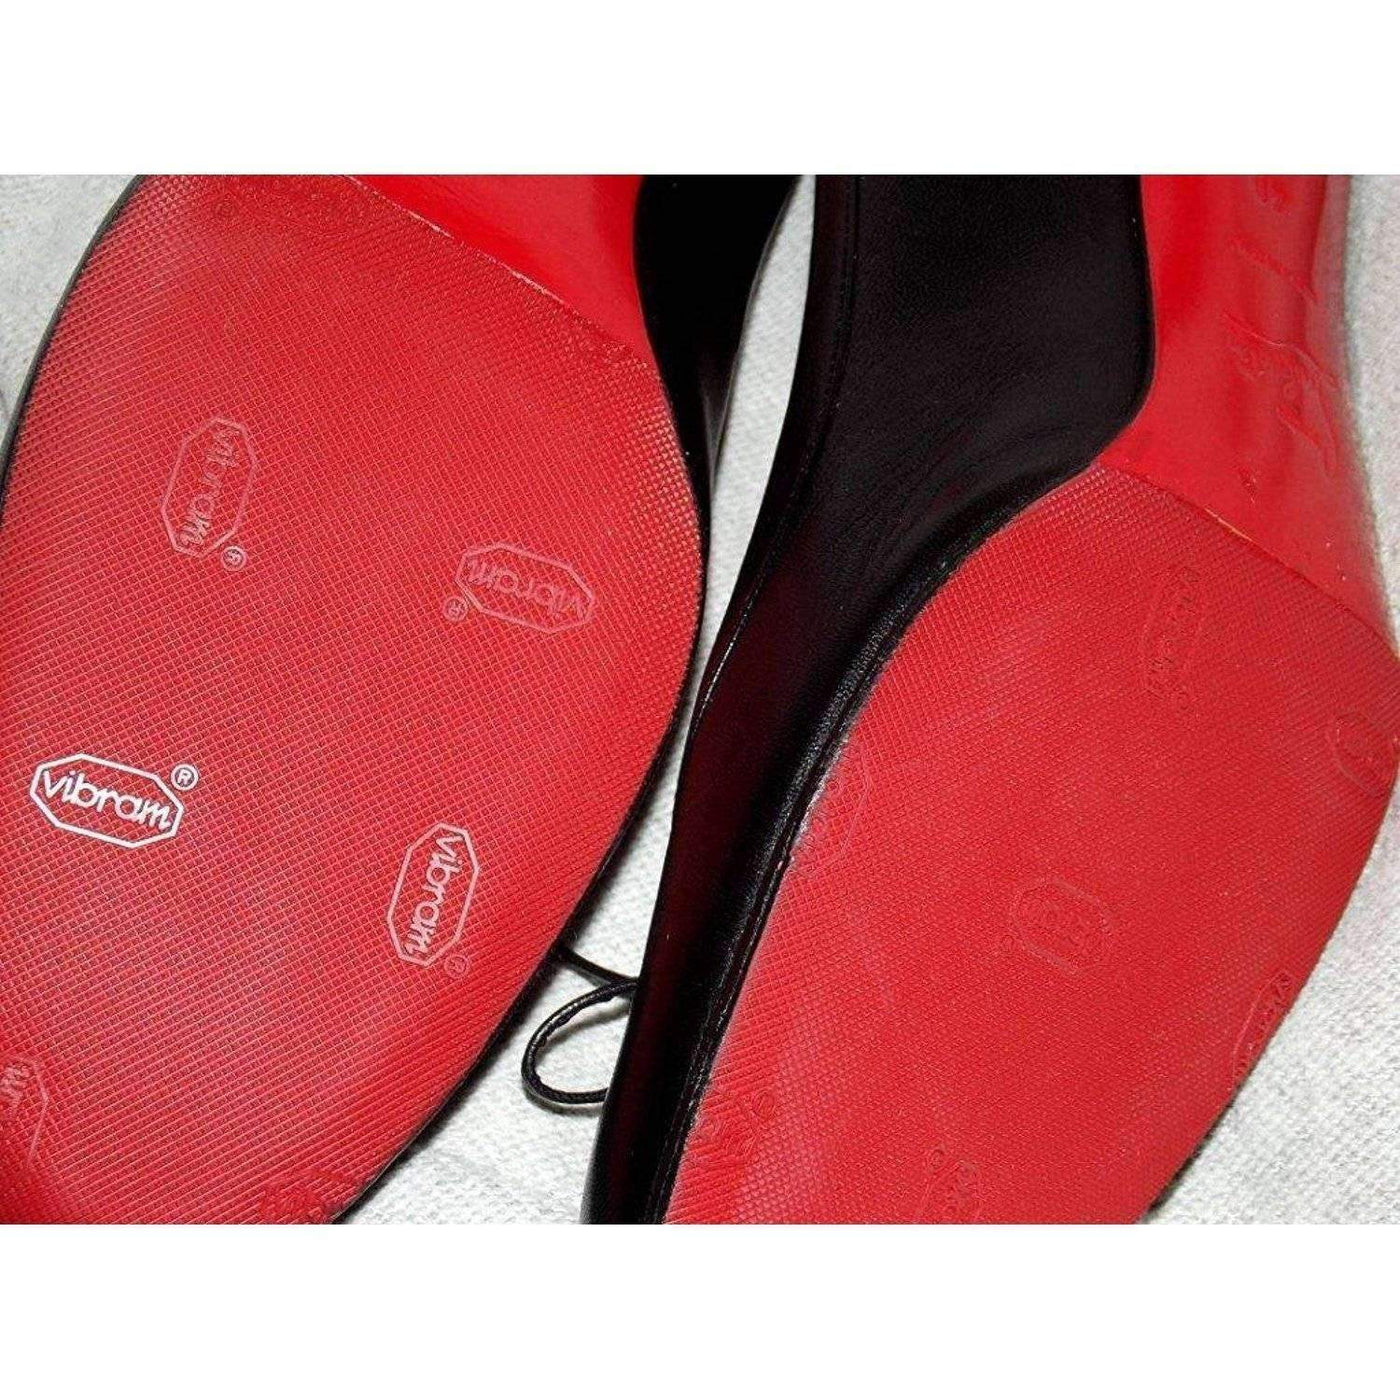 best website 6b4e8 f76ca Vibram Italian Red Rubber Soles Replacement for Christian Louboutin Shoes